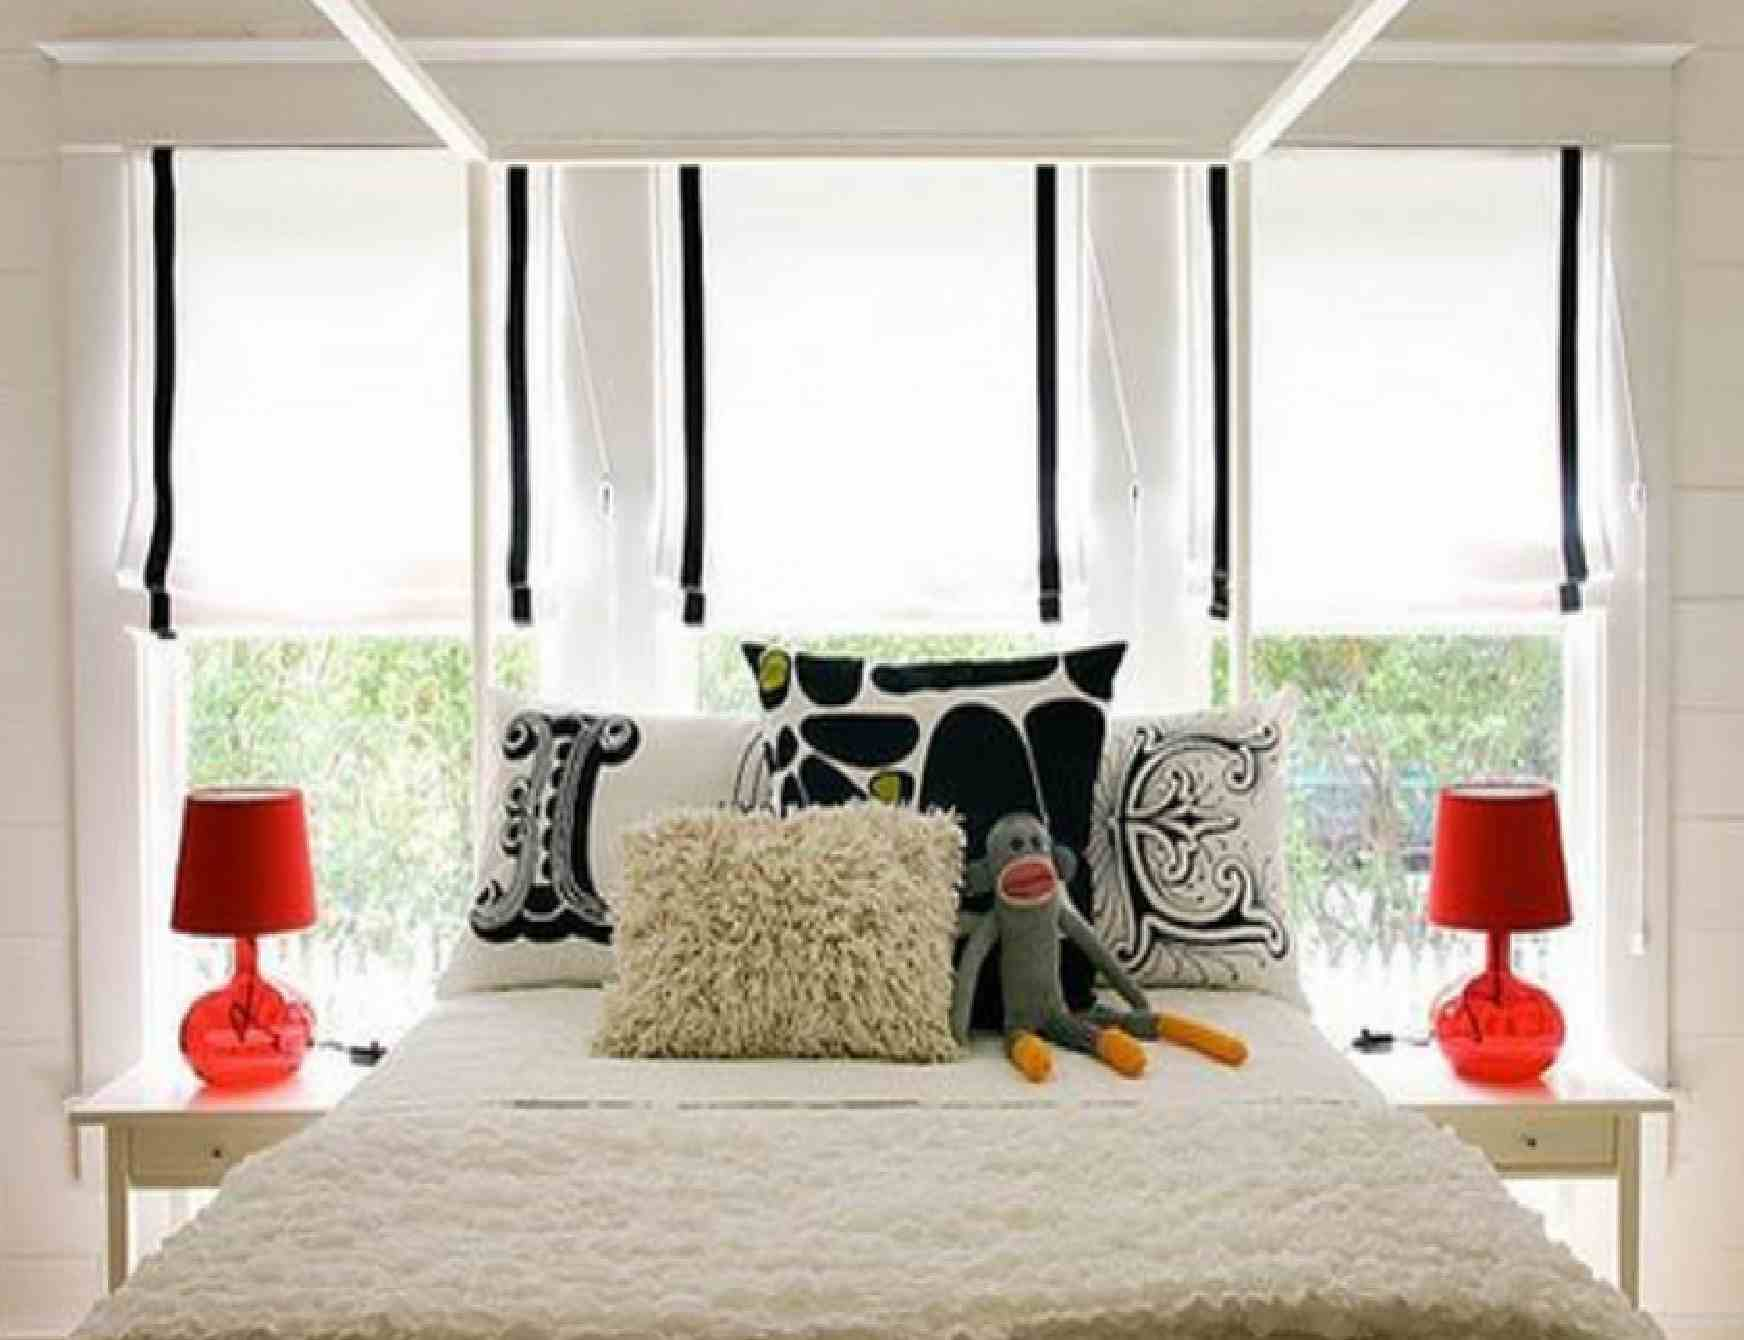 Futuristic Cool Interior Design With Wonderful Lightings : Warm Fur Quilt Cute Doll Cool Interior Design Red Table Lamps